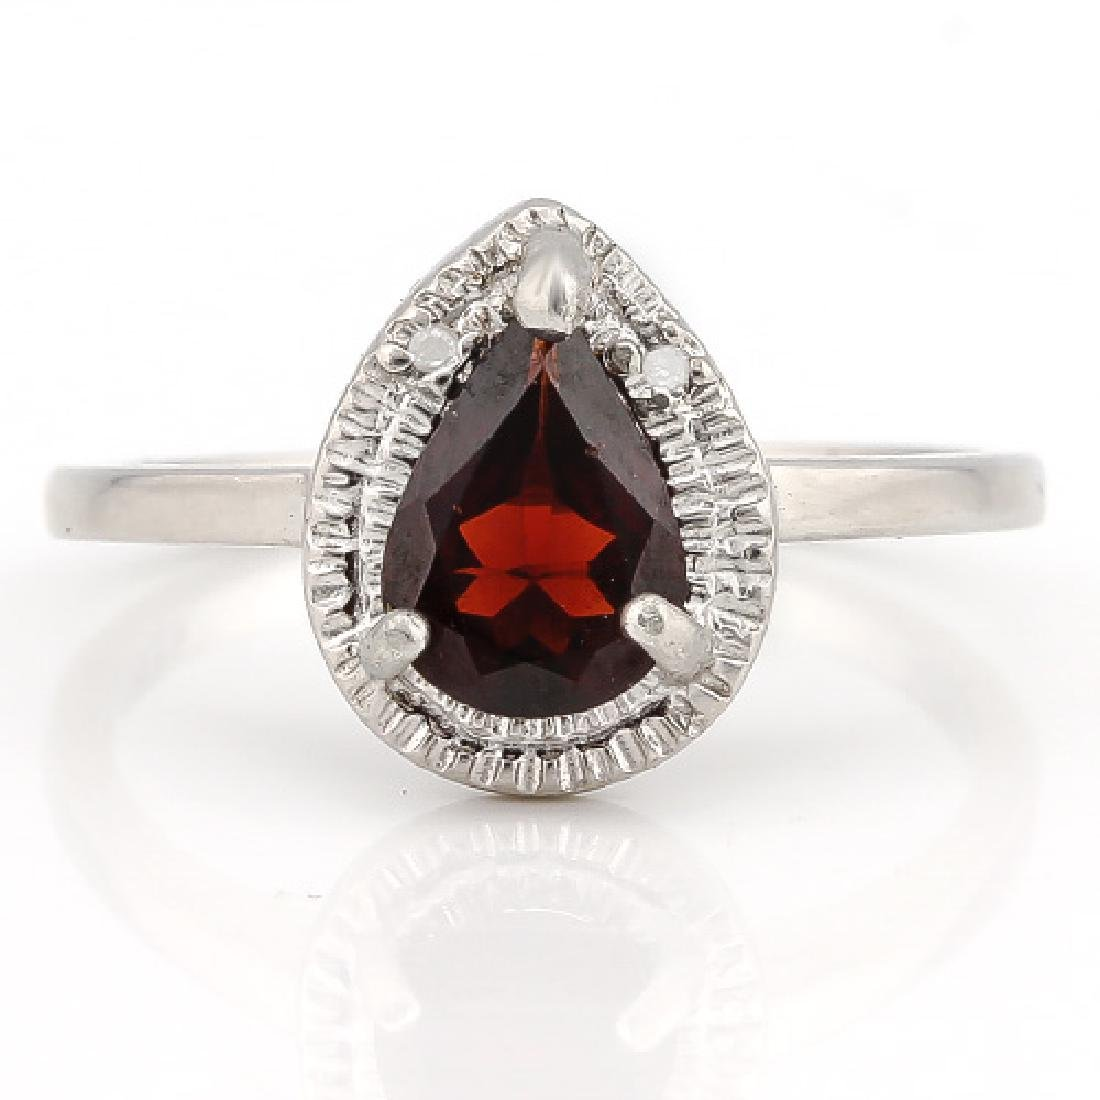 1 1/2 CARAT GARNET & DIAMOND 925 STERLING SILVER RING